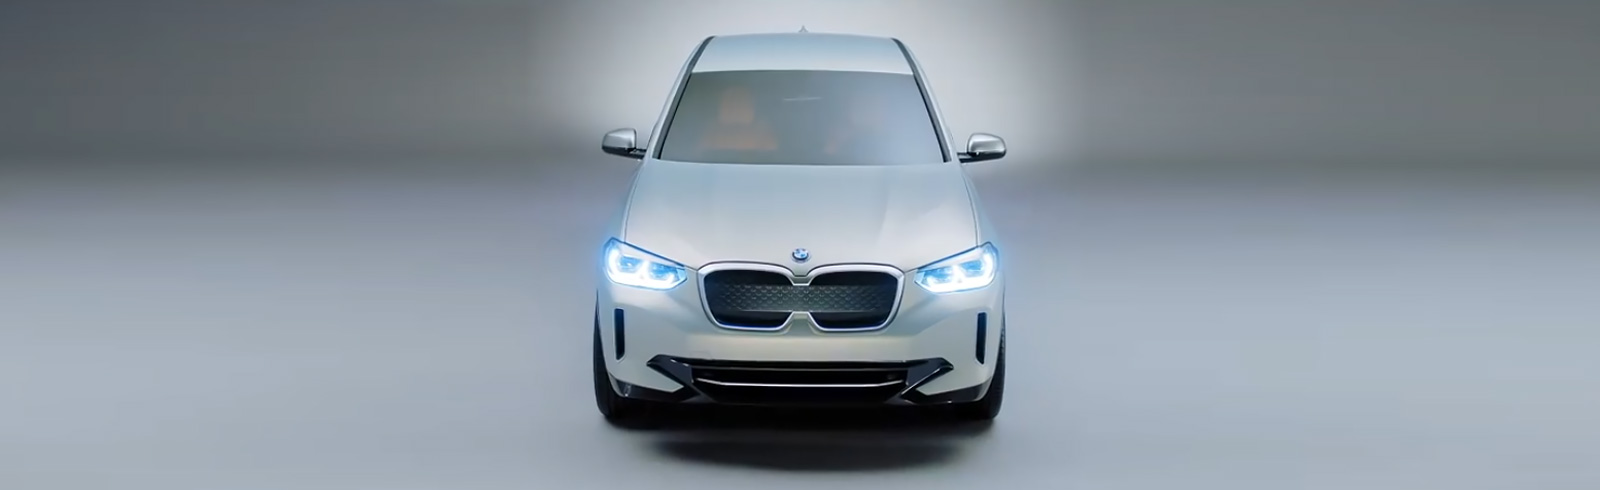 BMW X1 and BMW 5 Series will include BEV models as part of the Power of Choice strategy